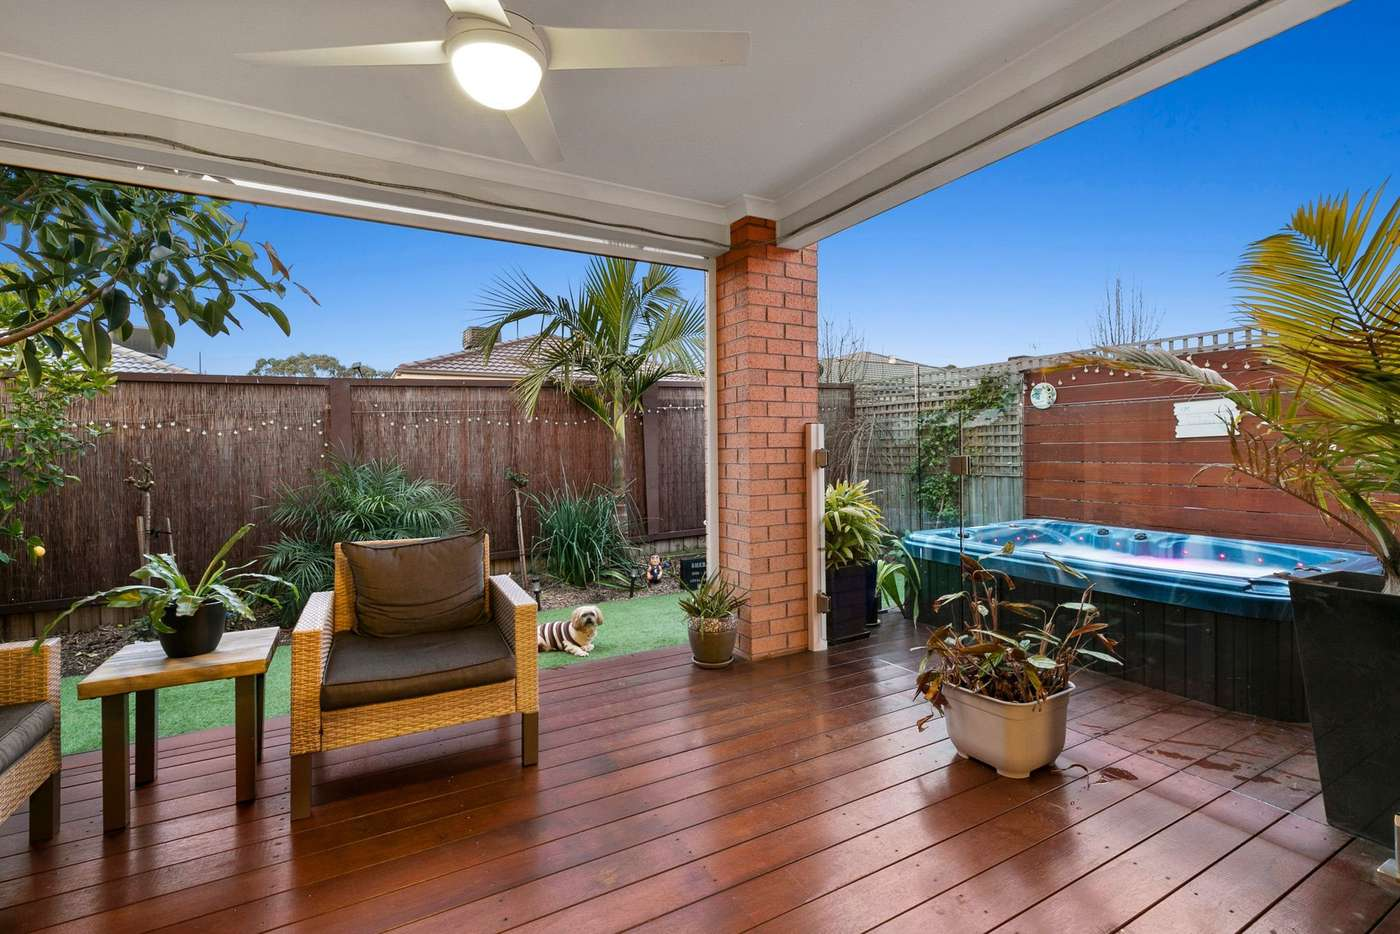 Sixth view of Homely house listing, 13 Newfields Drive, Drysdale VIC 3222